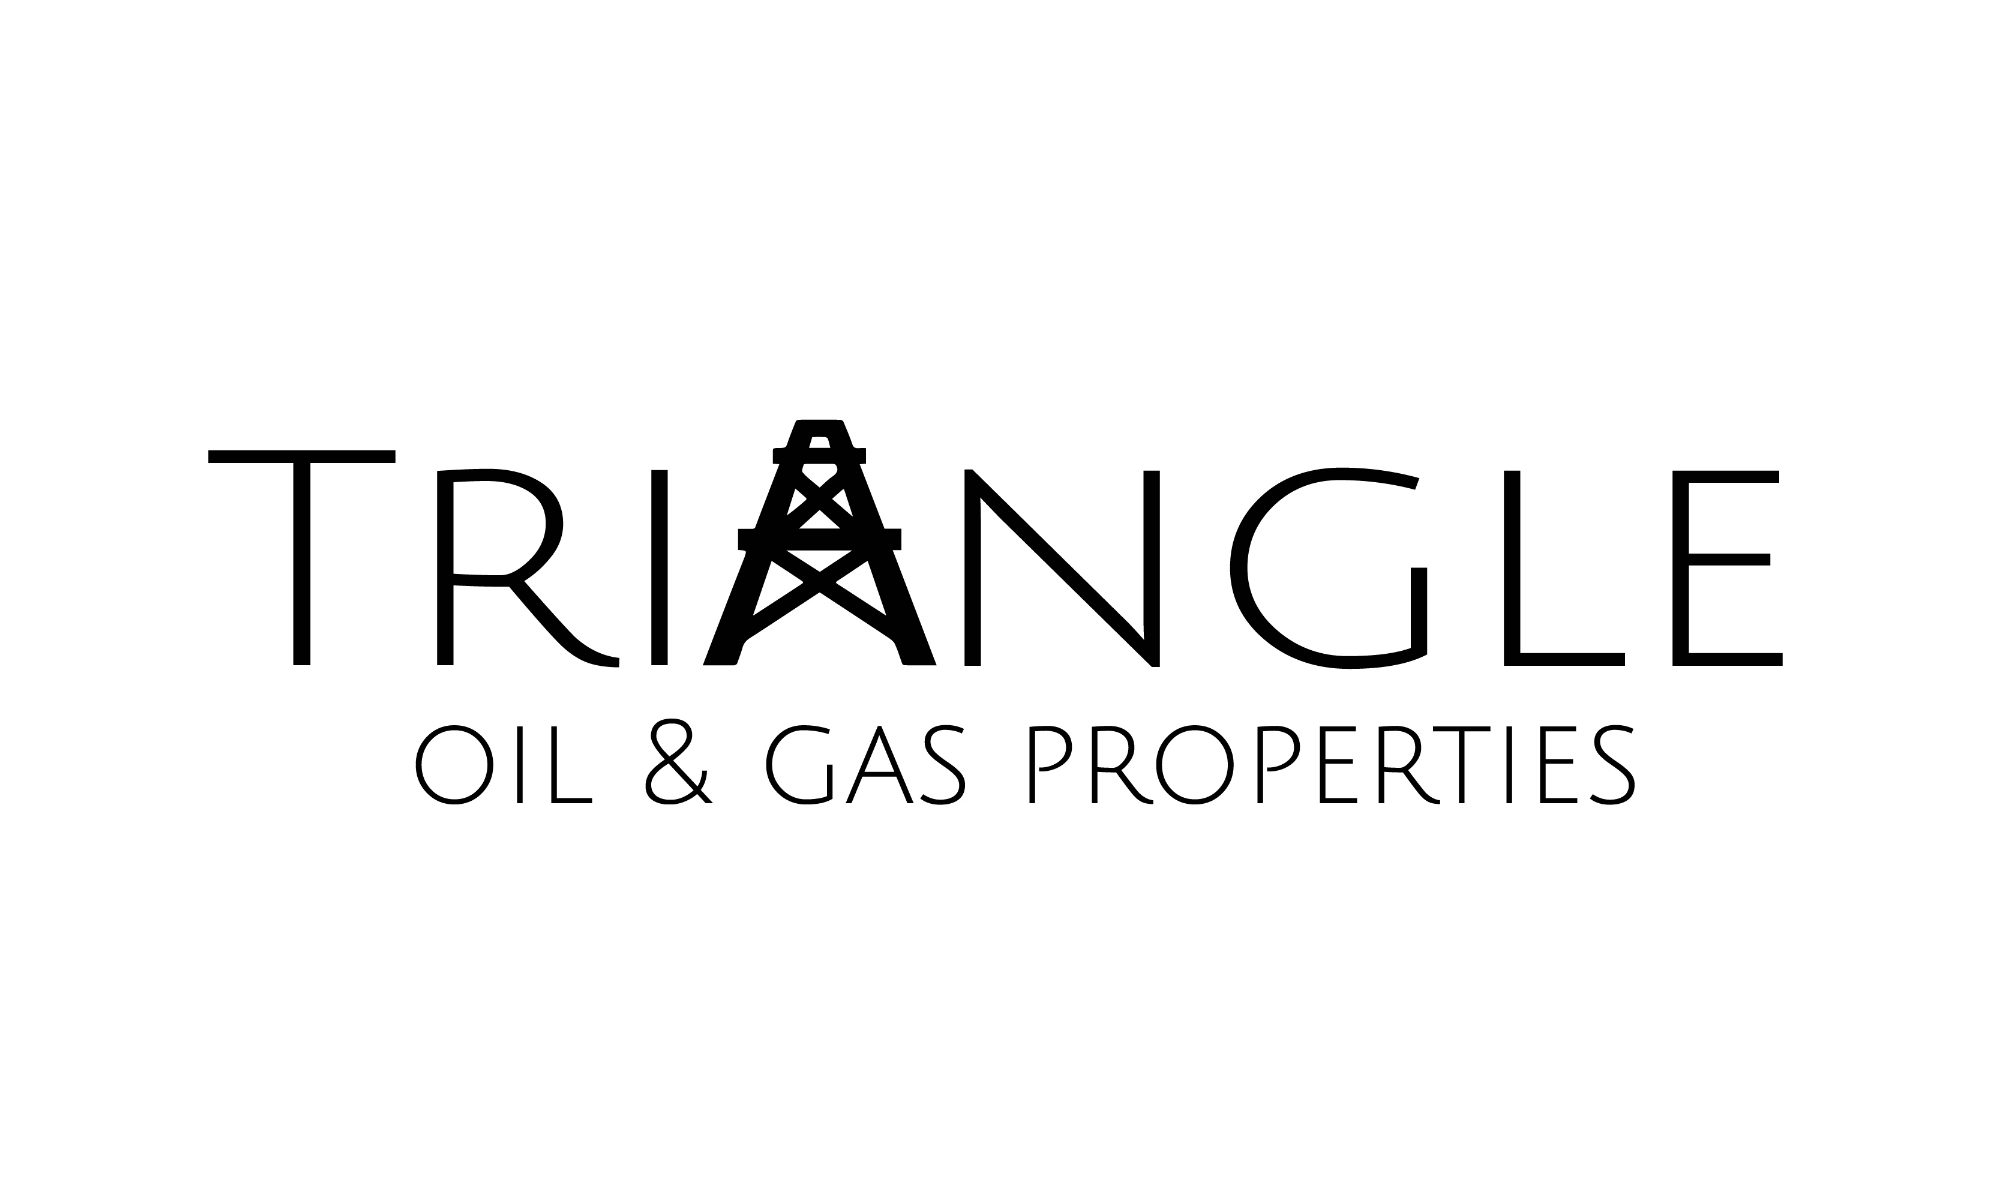 Triangle Oil & Gas Properties, LLC